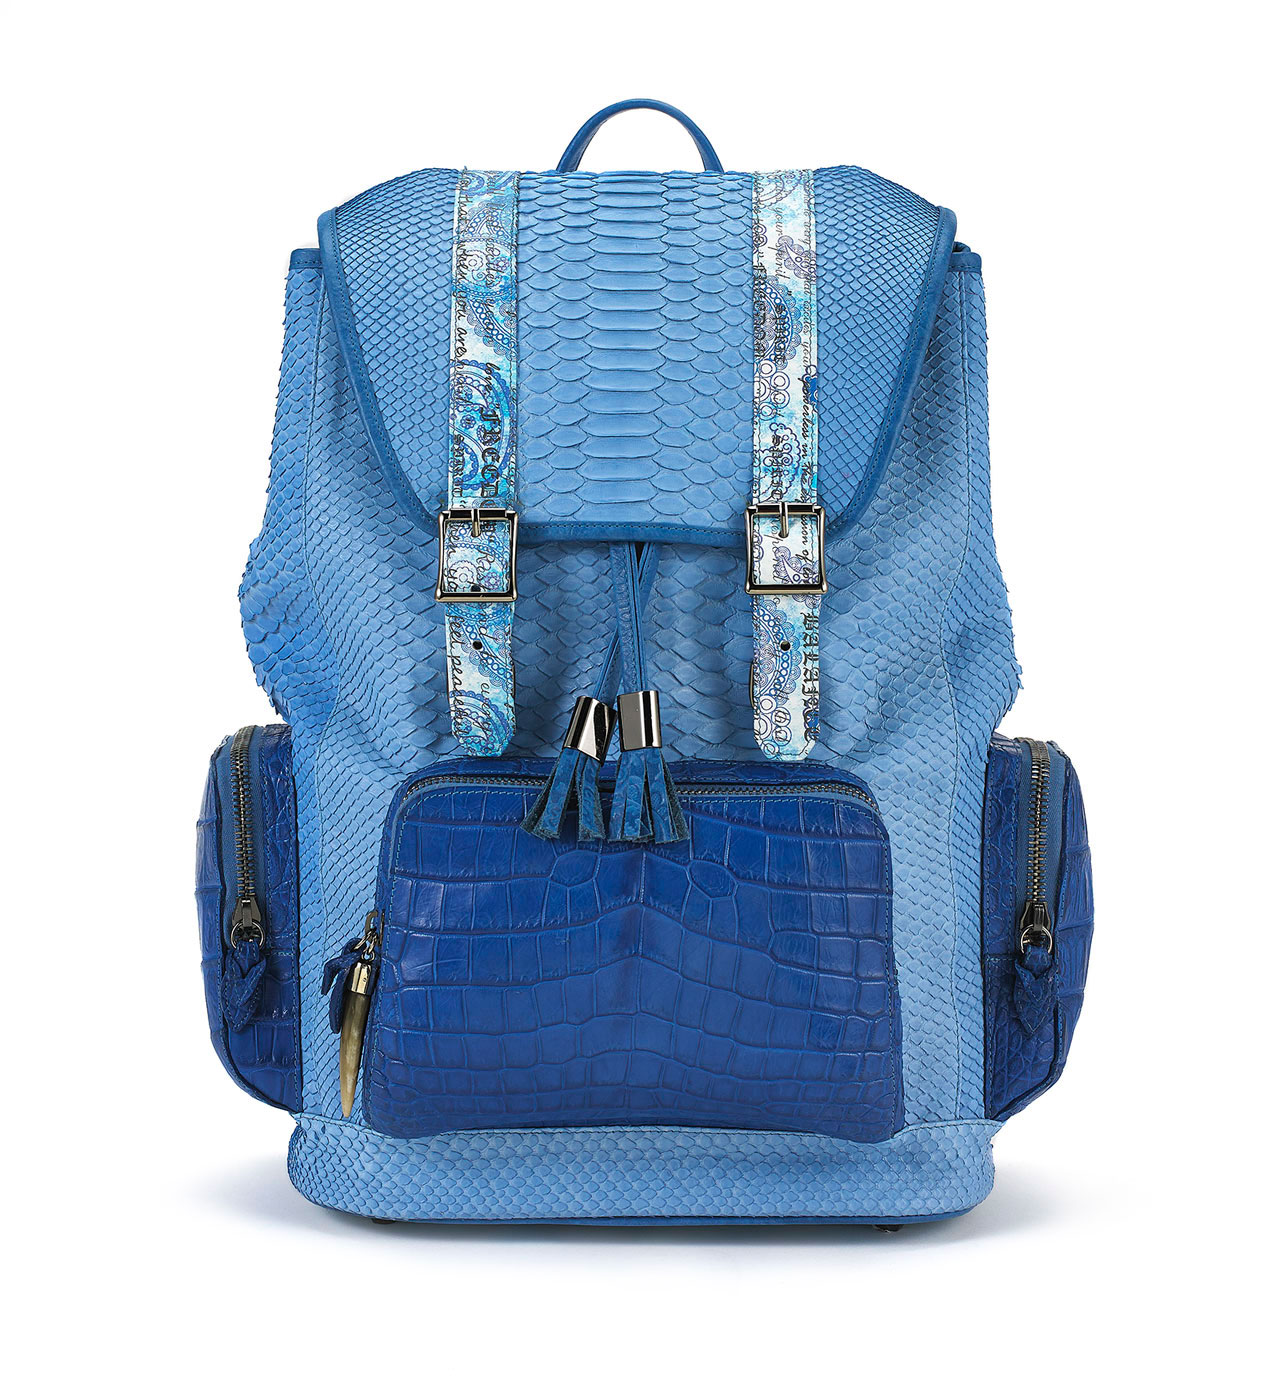 Miracles Blue Python Backpack with Croco Pockets